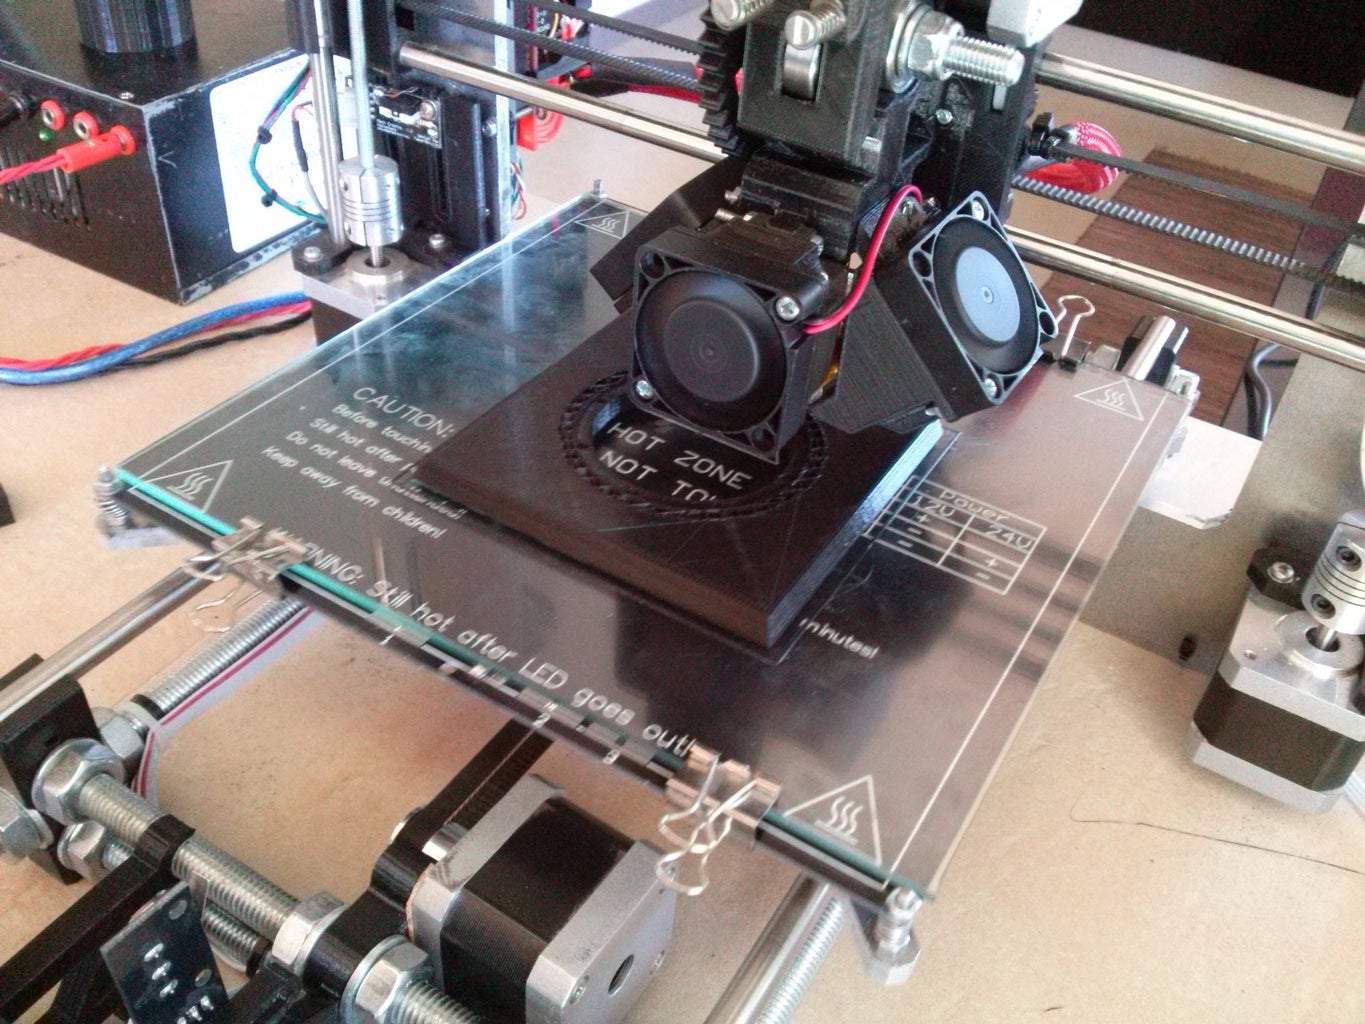 Printing the 3D Parts